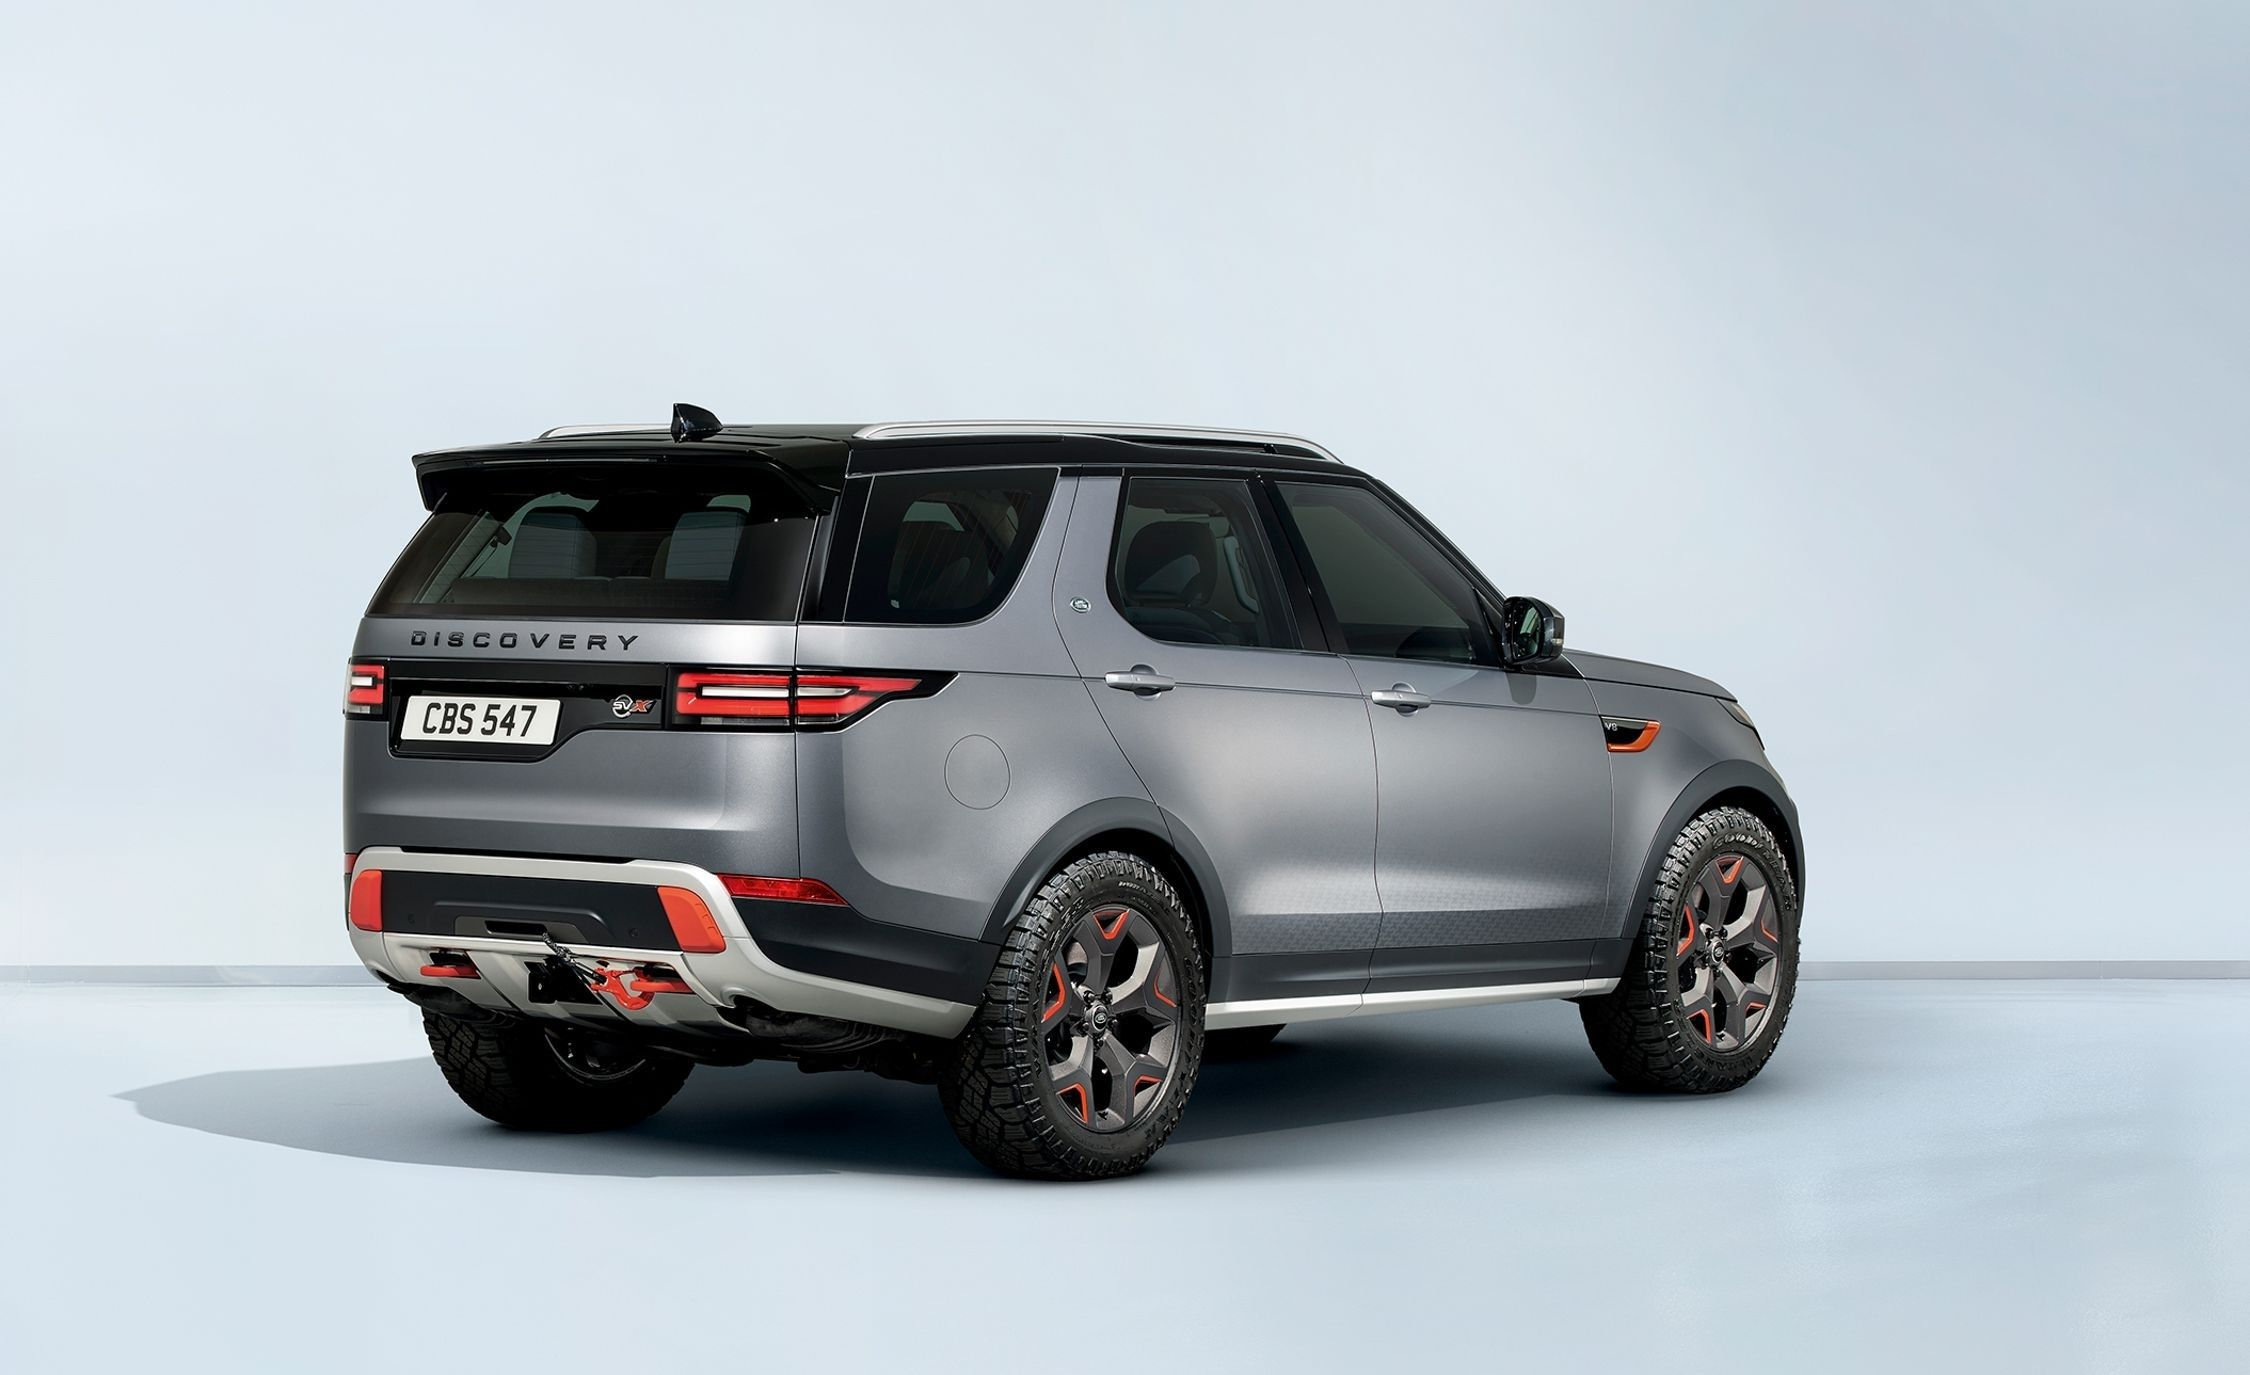 2019 Land Rover Discovery Svx First Drive (With images